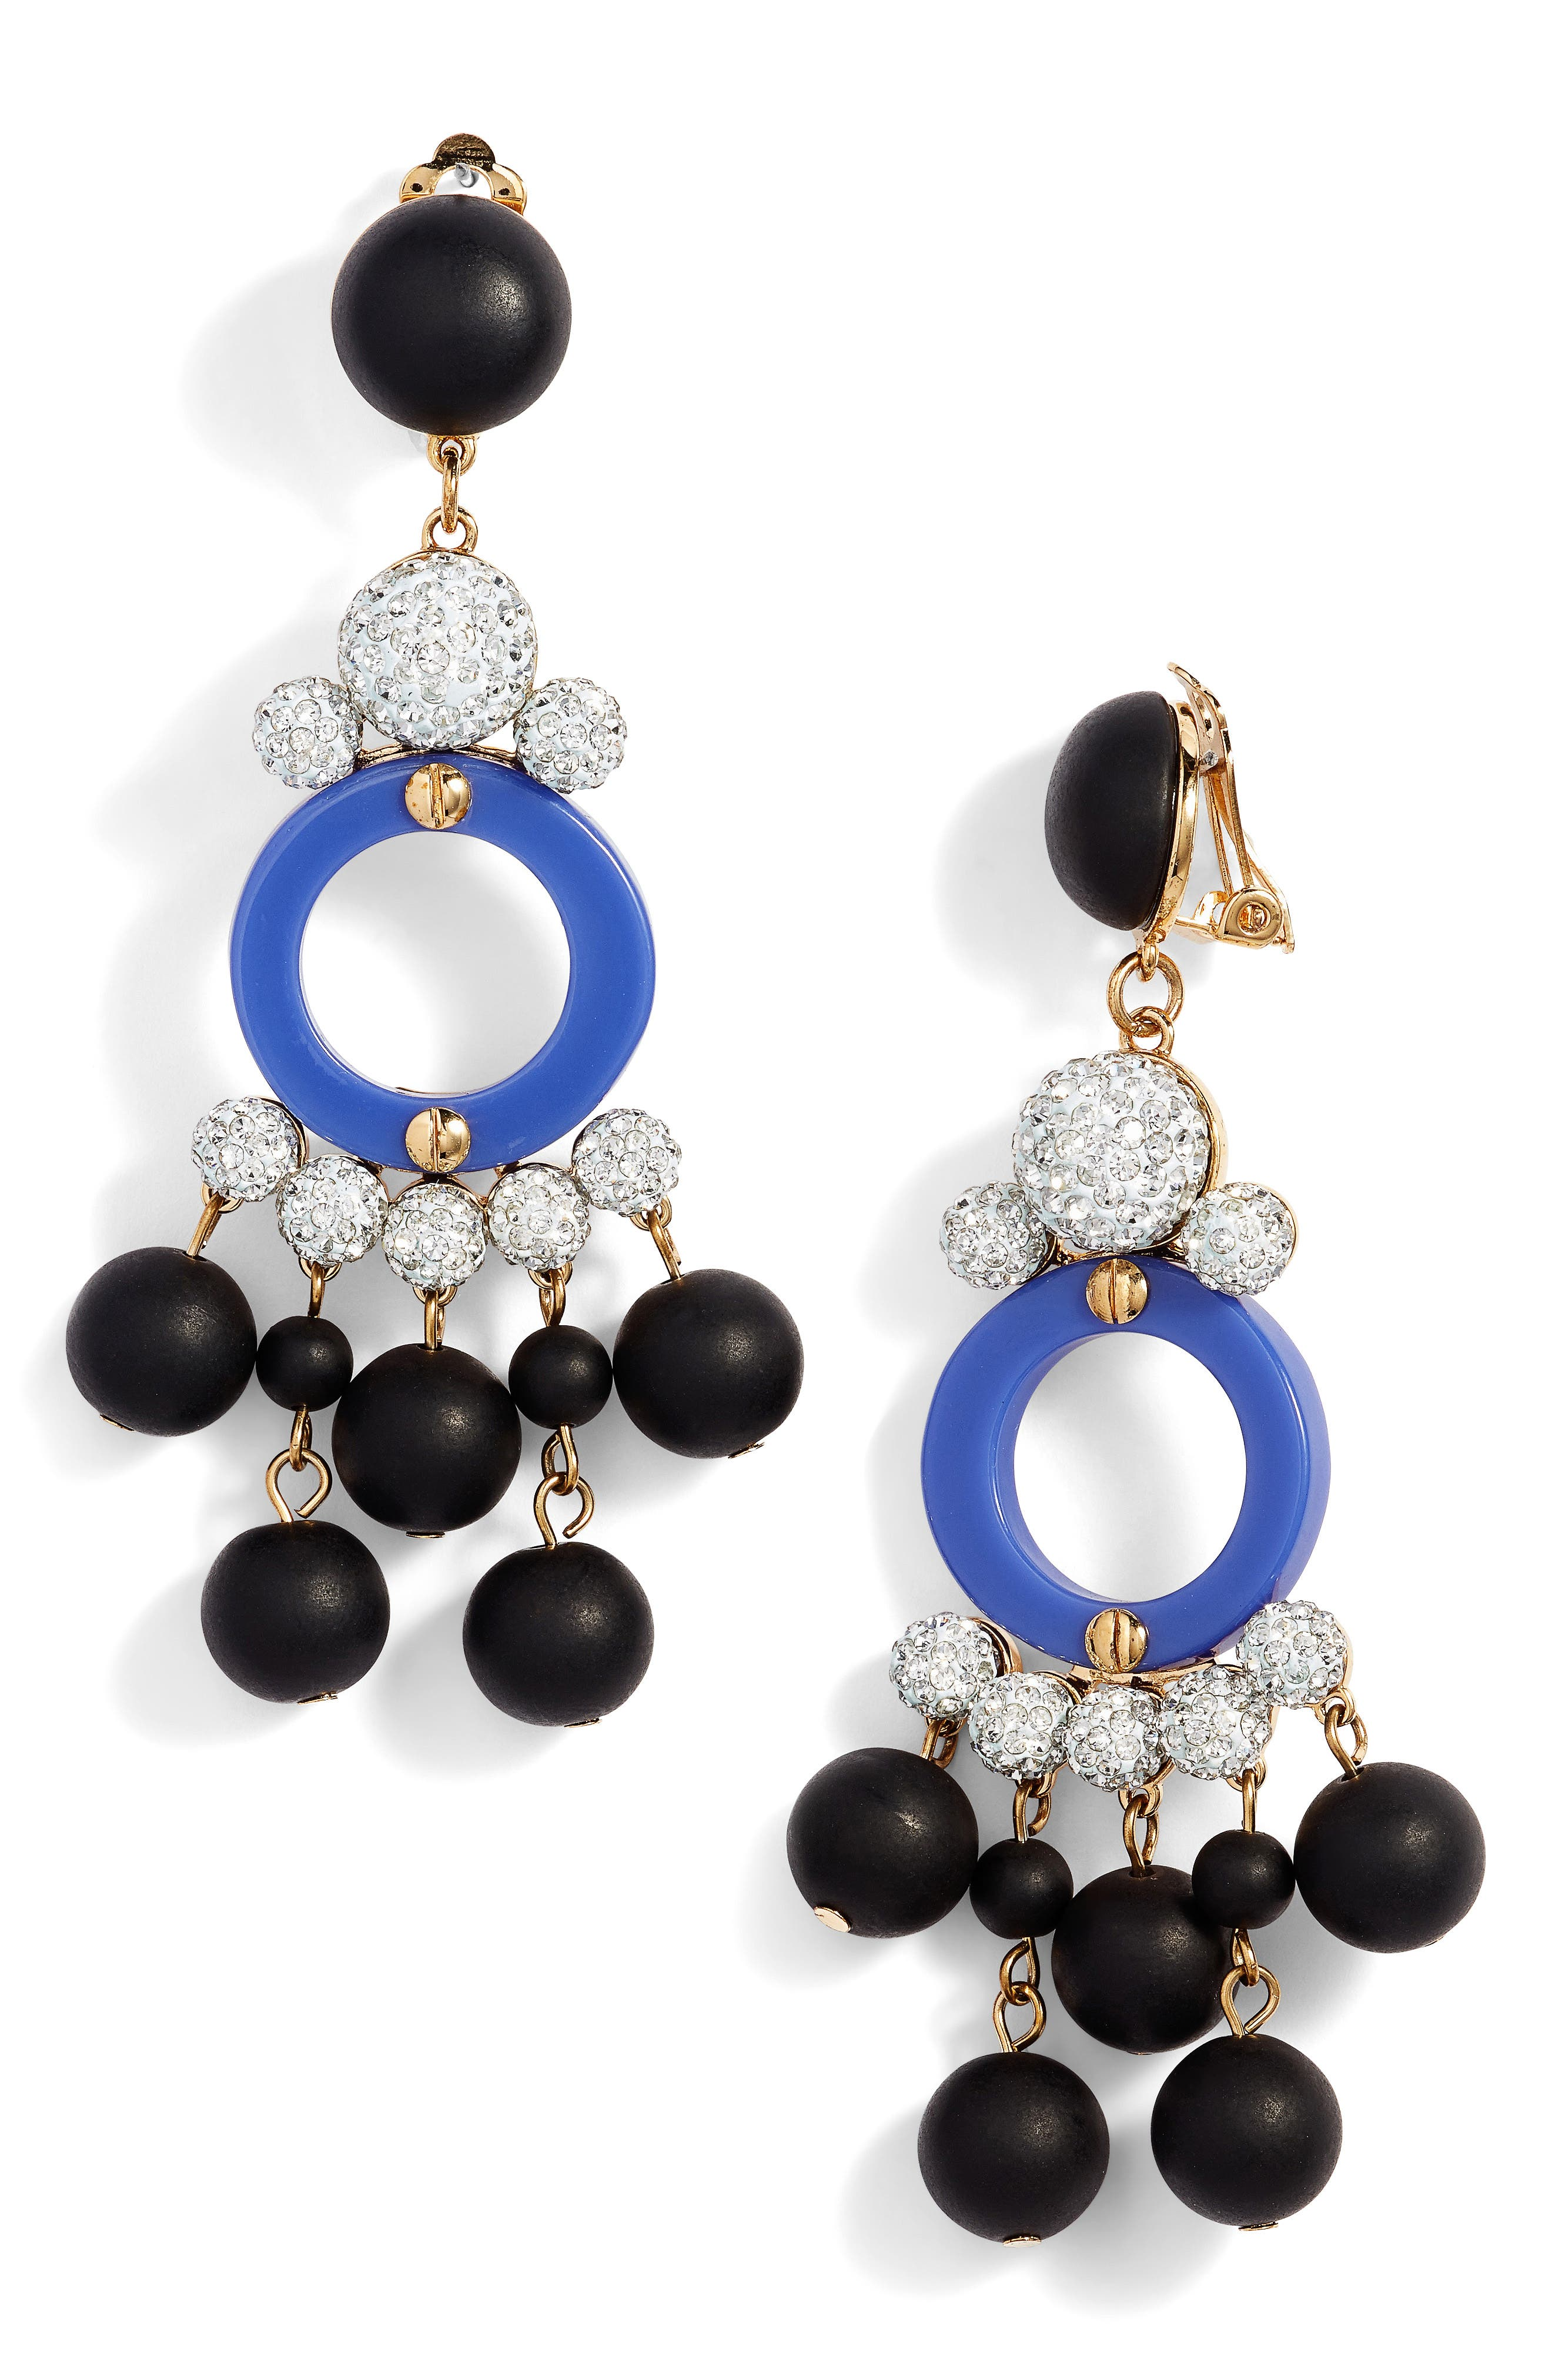 Boulevard Clip Drop Earrings,                         Main,                         color, 001